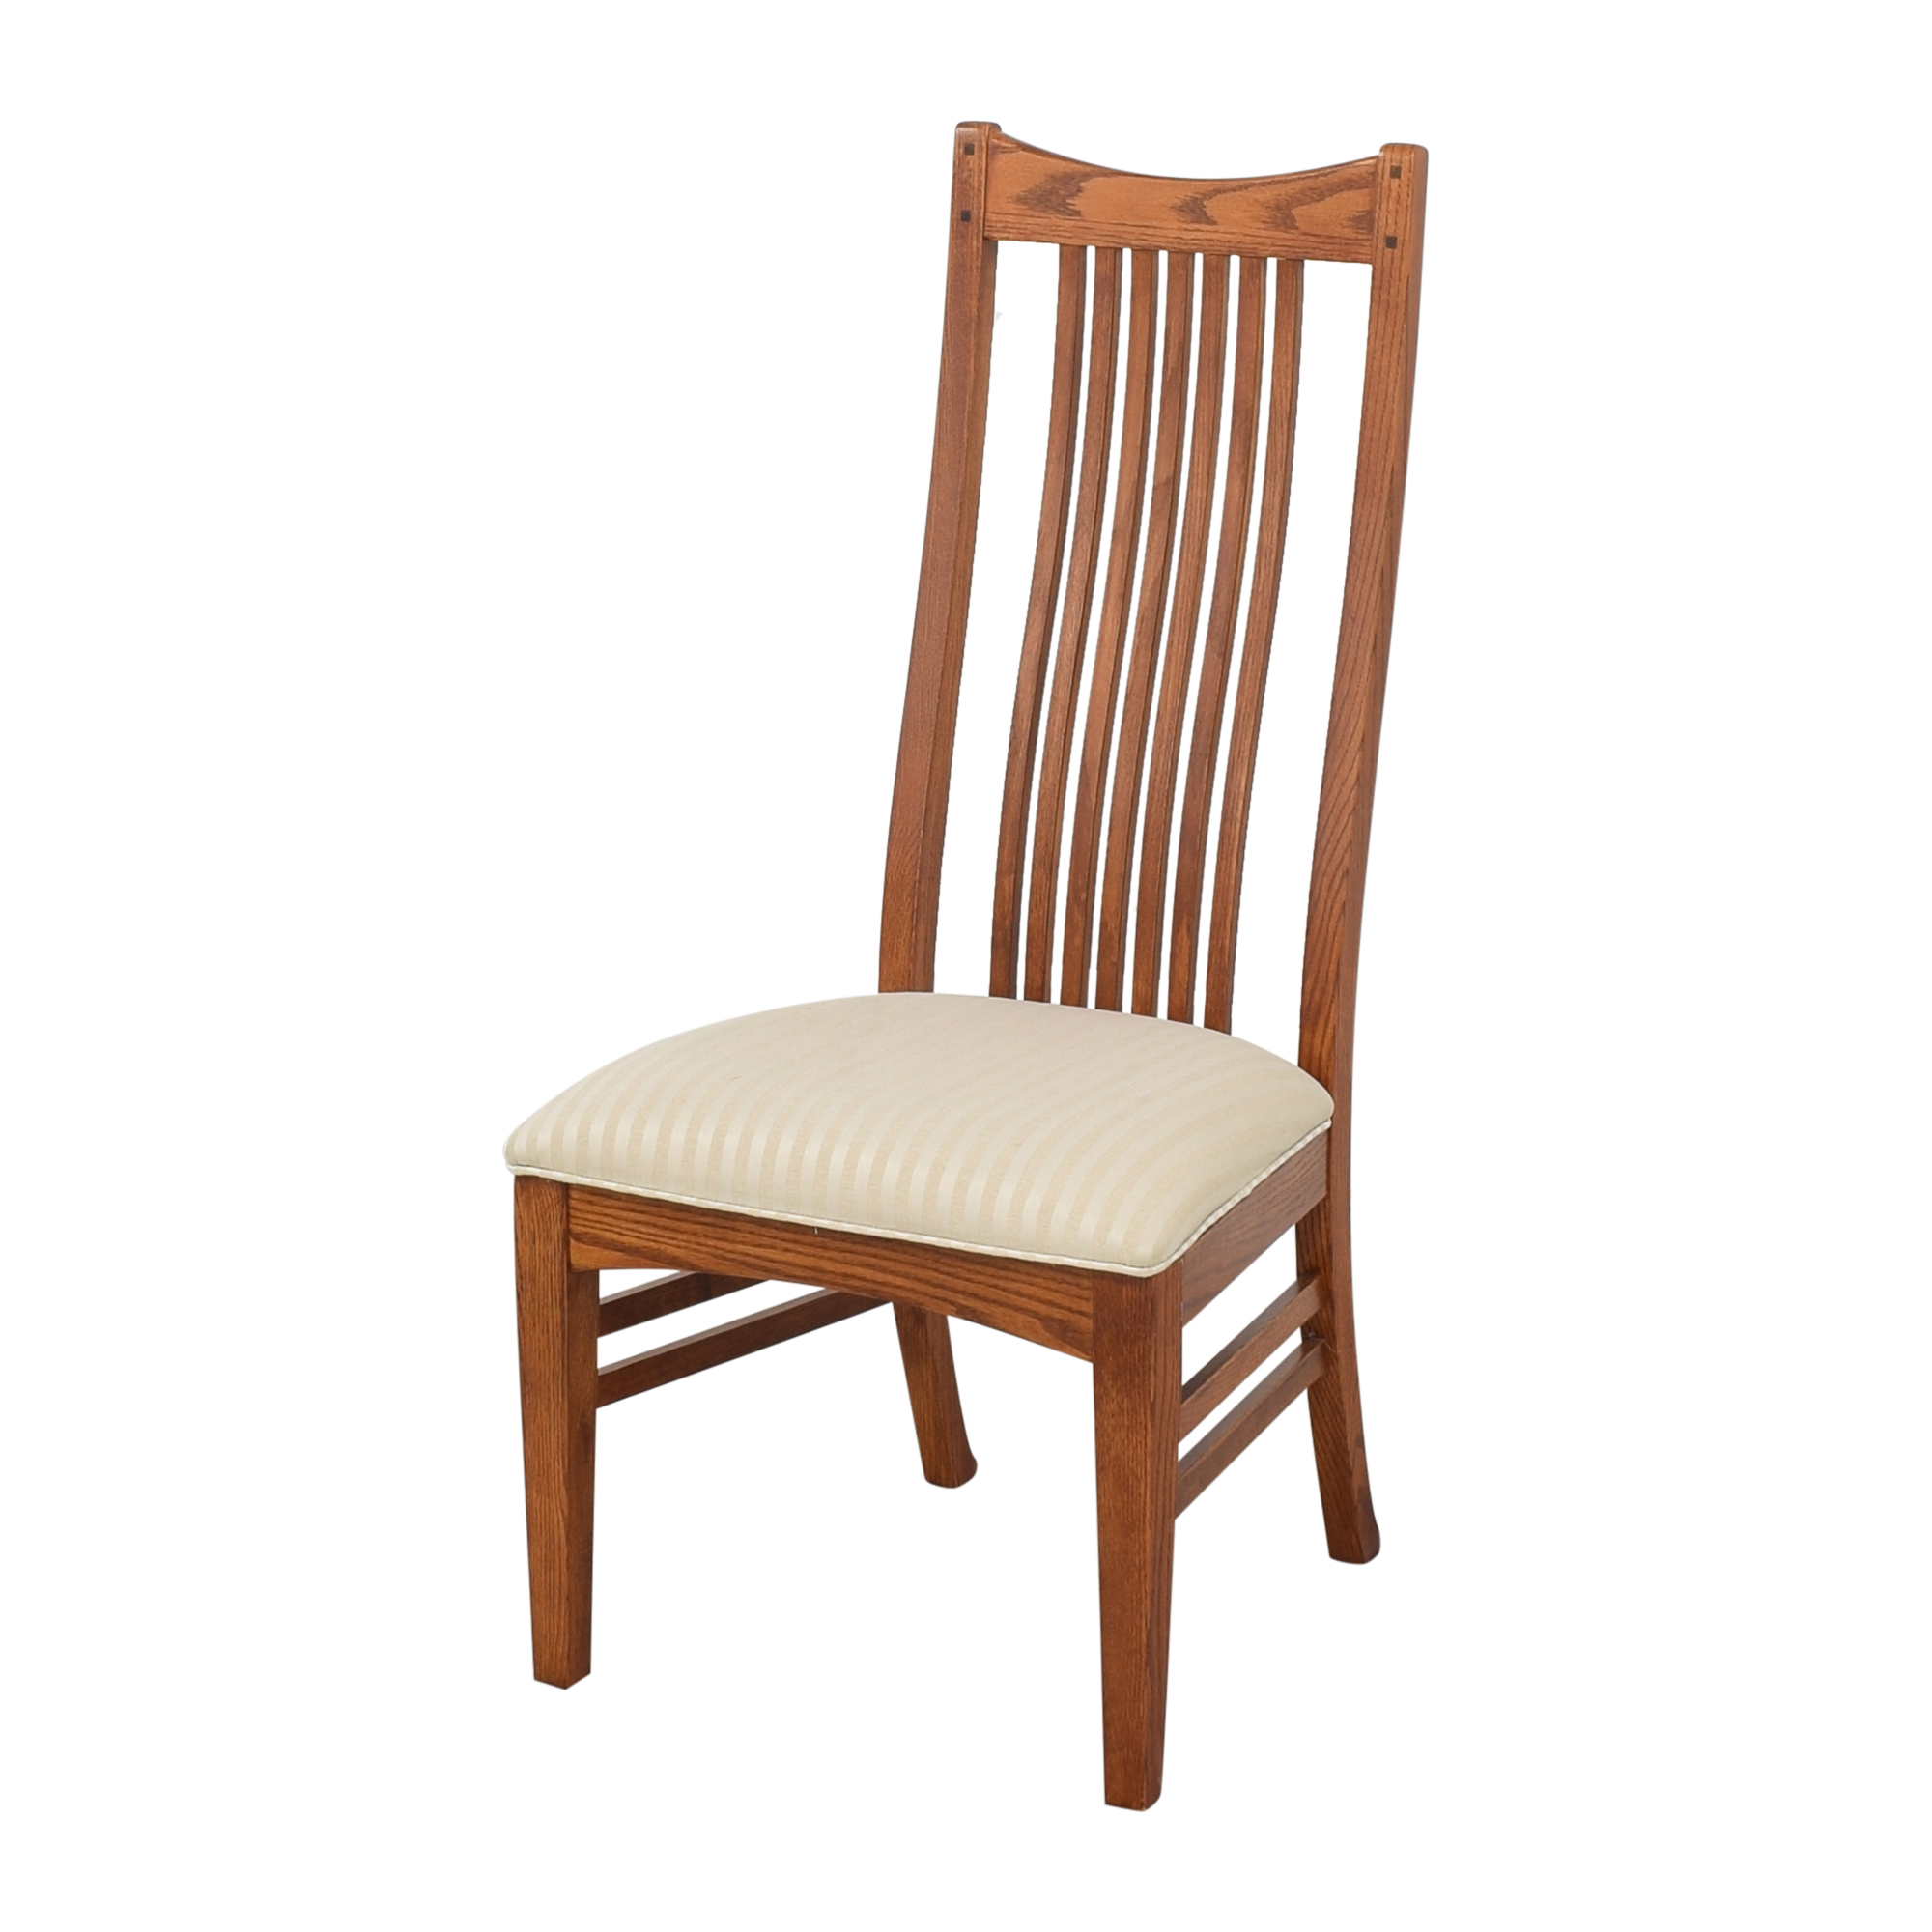 Lexington Furniture Lexington Furniture Upholstered Dining Chairs second hand